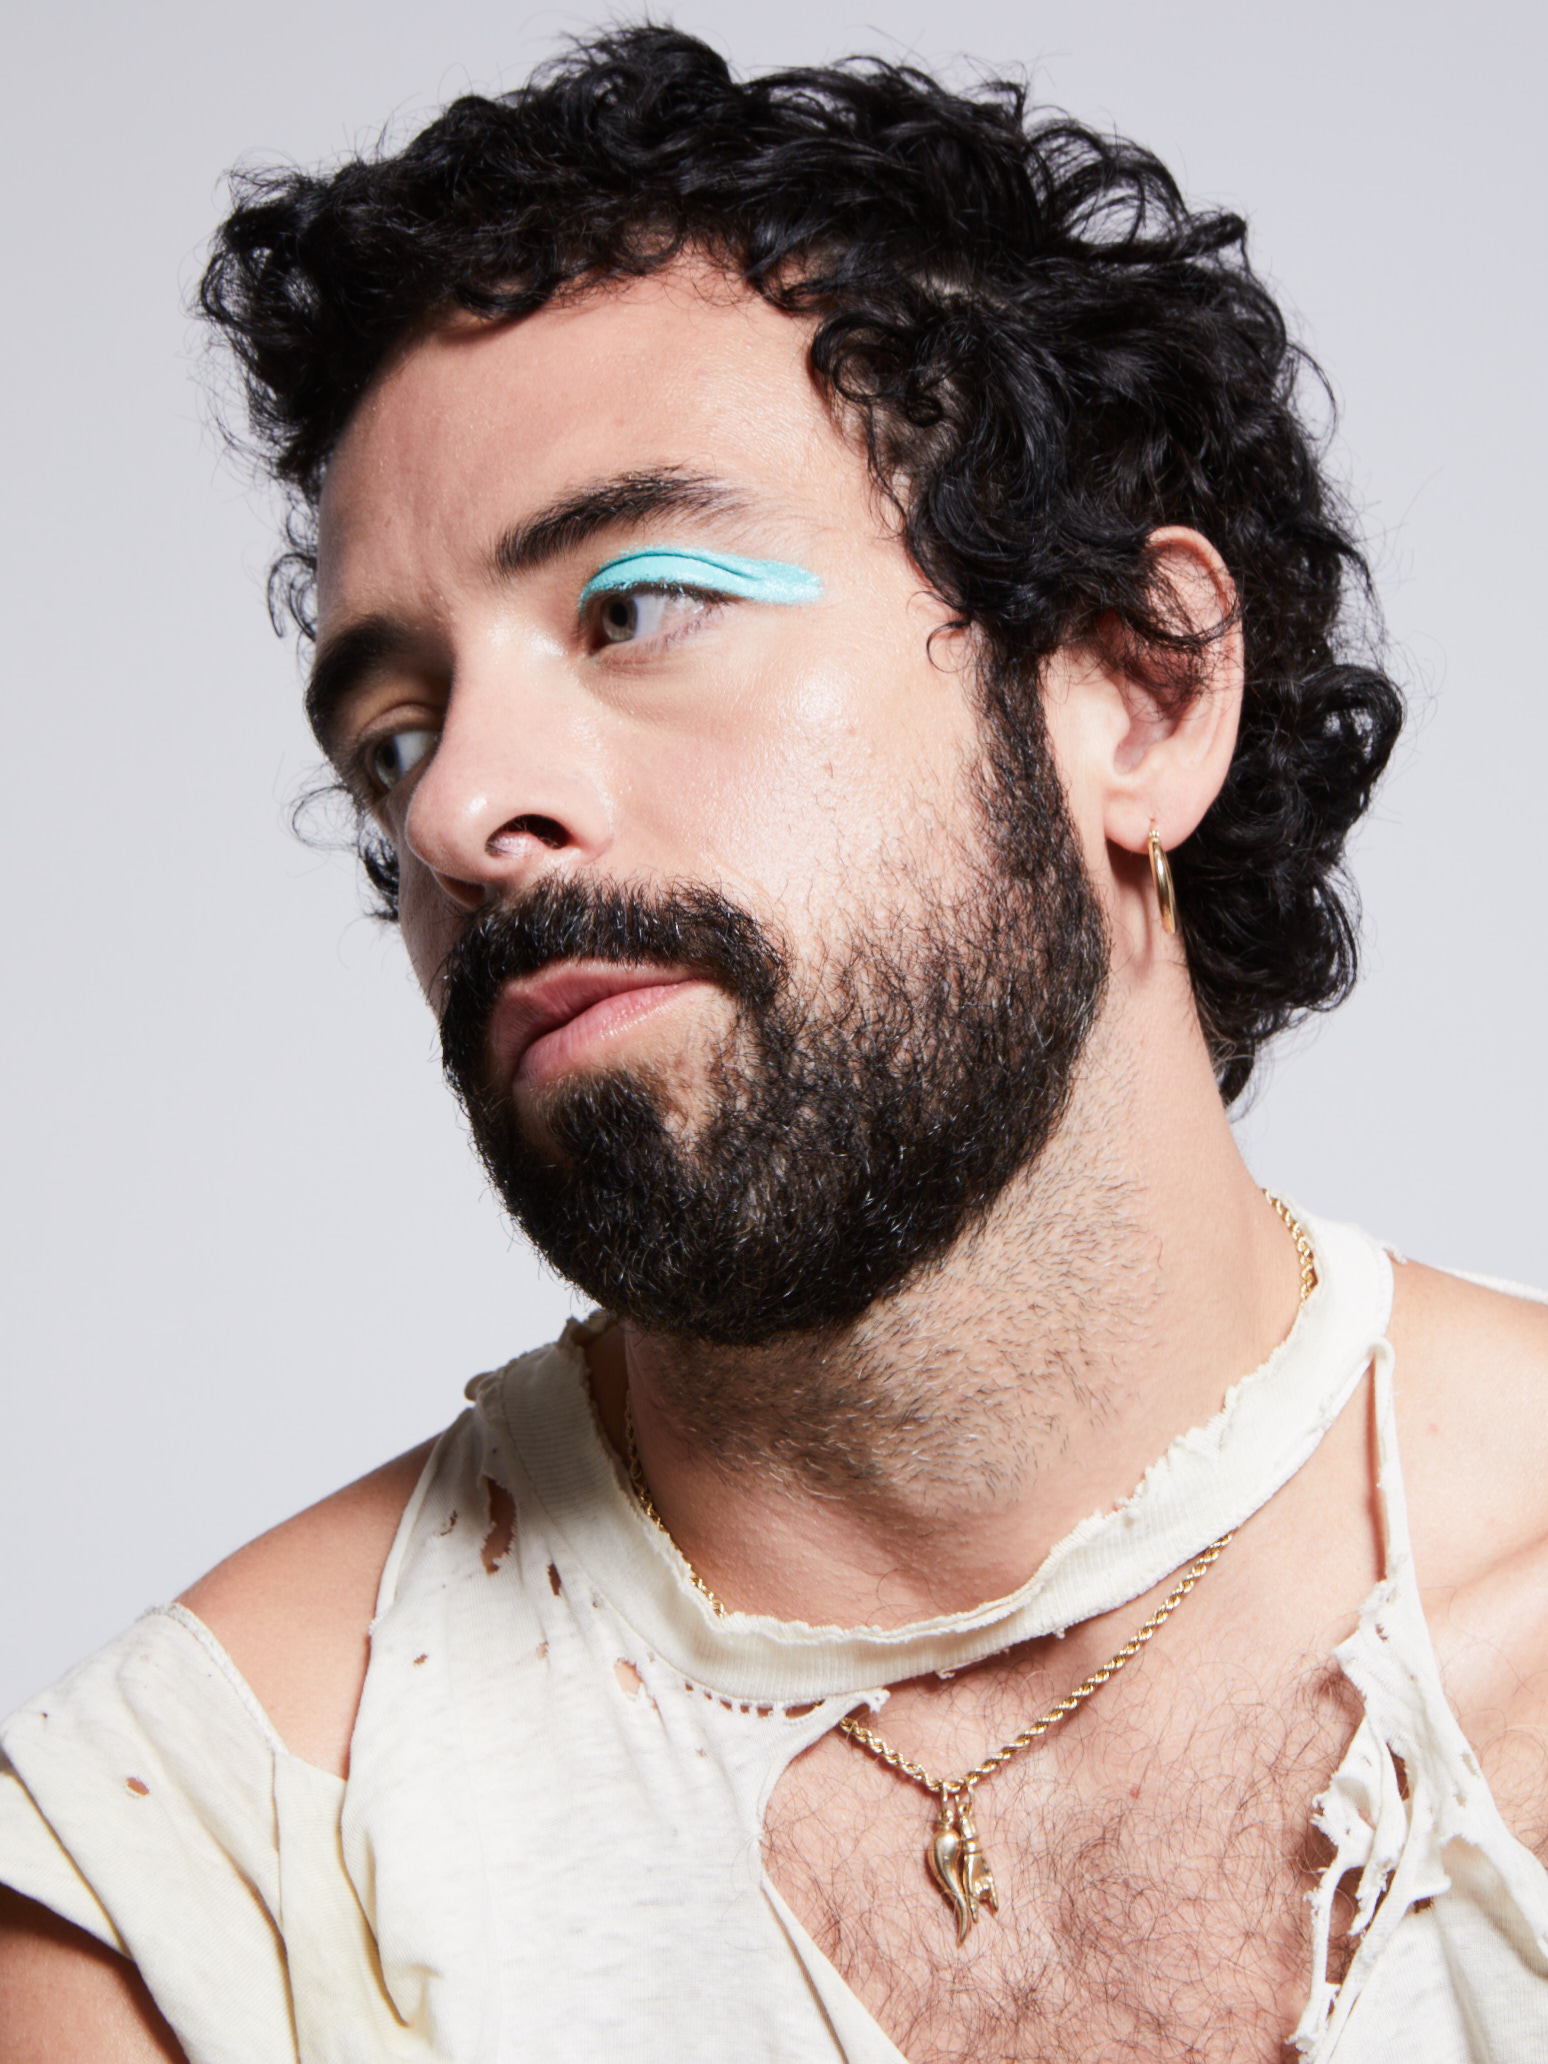 SSION Photographed by Tyler Nevitt for Ladygunn